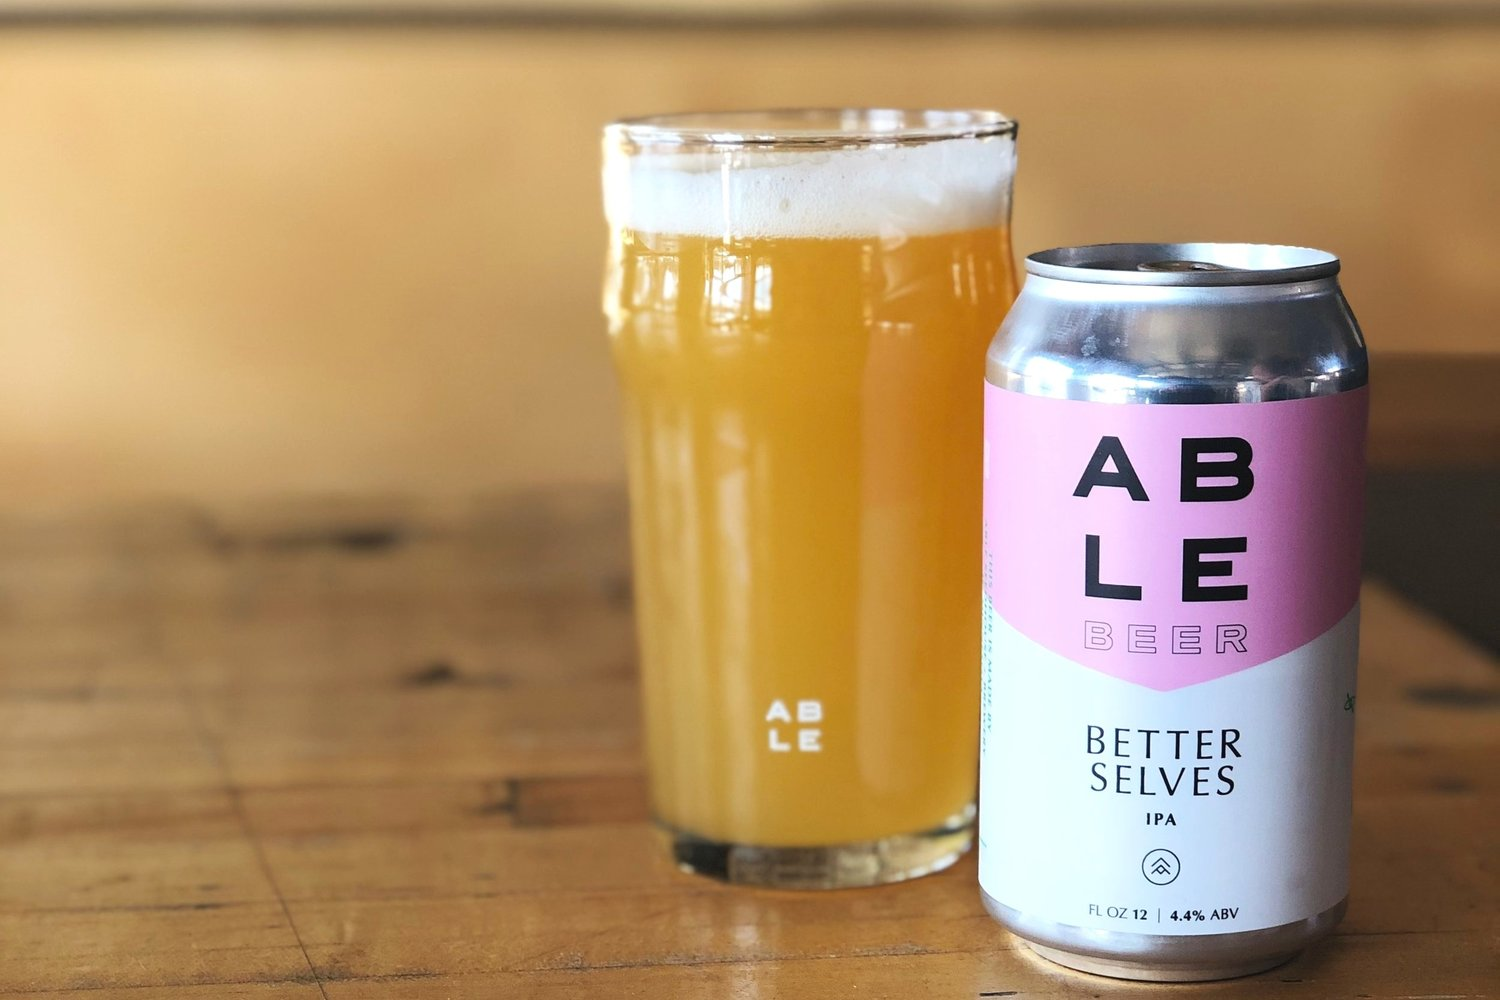 ABLE Brewery's Better Selves: Non IPA Drinker's IPA With a Bangin